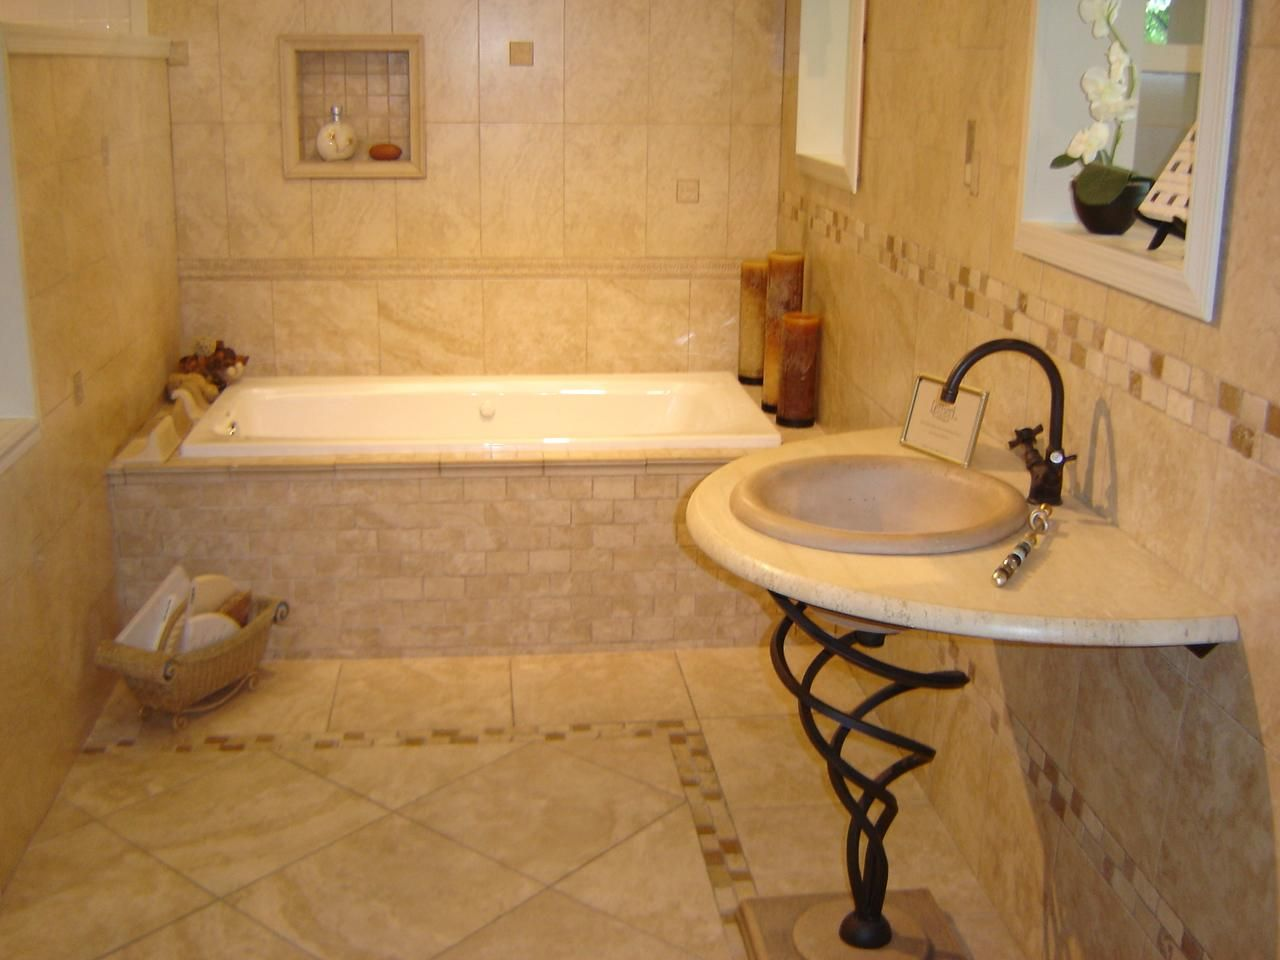 Bathroom Tile Design Ideas best tile product catalog tile products stone products ceramic tiles 1000 Images About Bathroom Redos On Pinterest Small Bathrooms Bathroom And Small Bathroom Redo